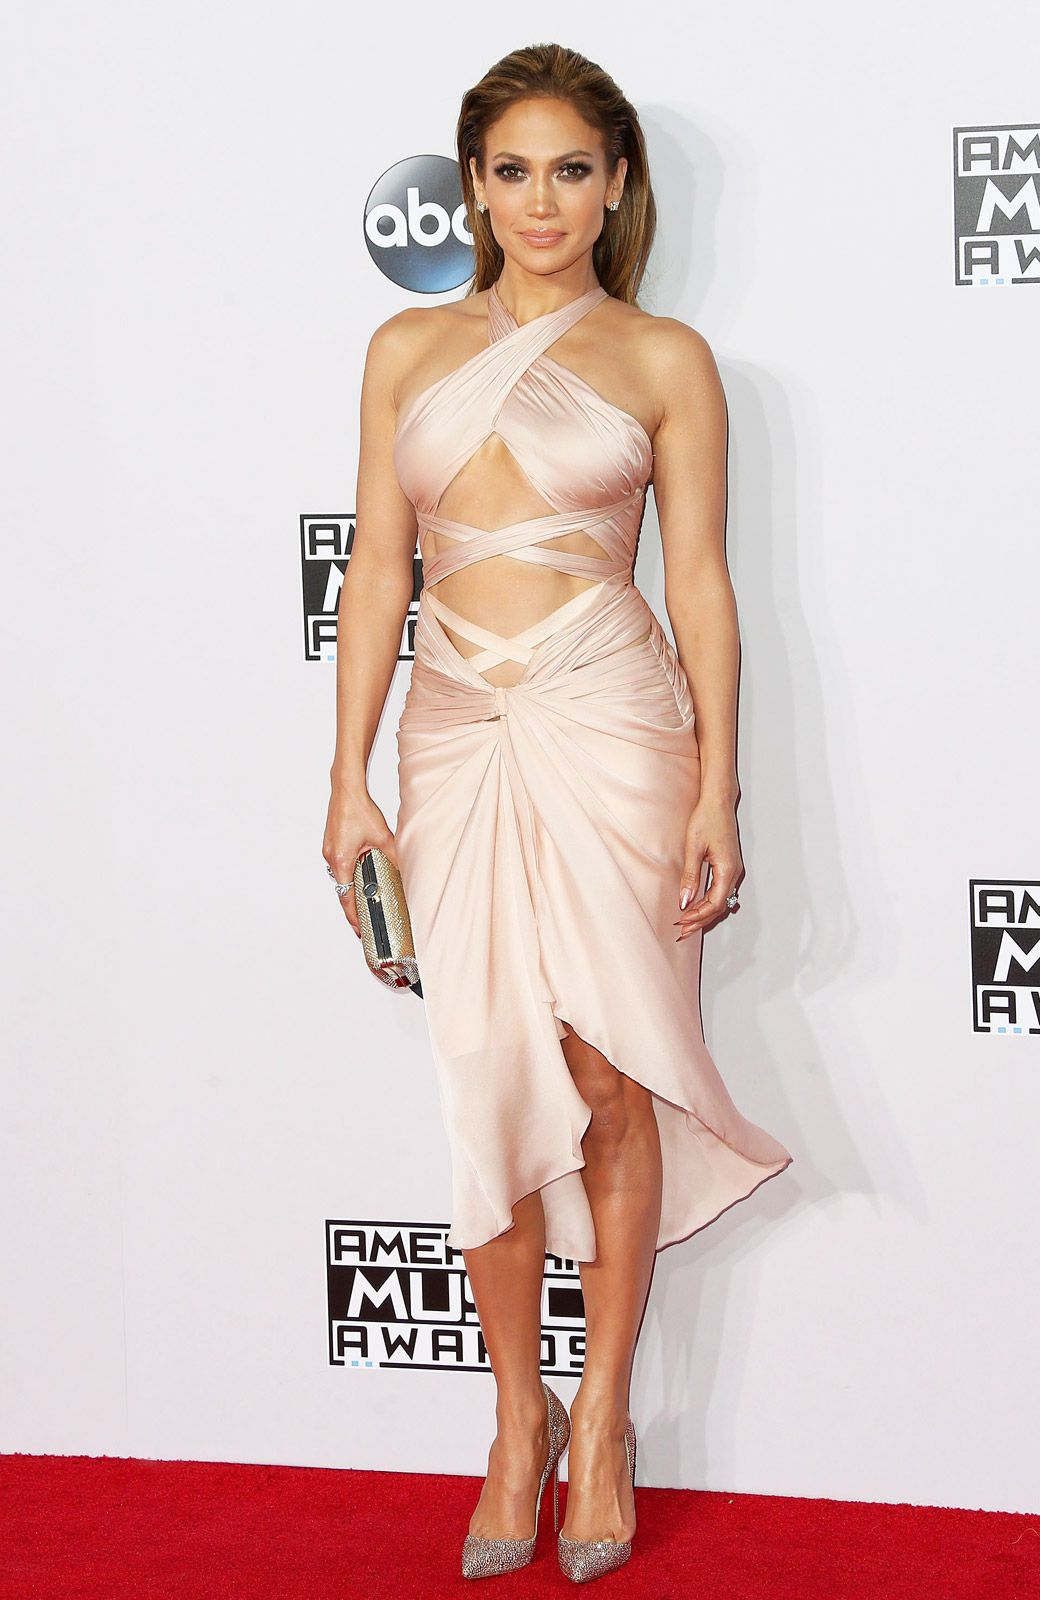 AMAs Style Roundup! The Good, the Fab, and the See-Through on the ...